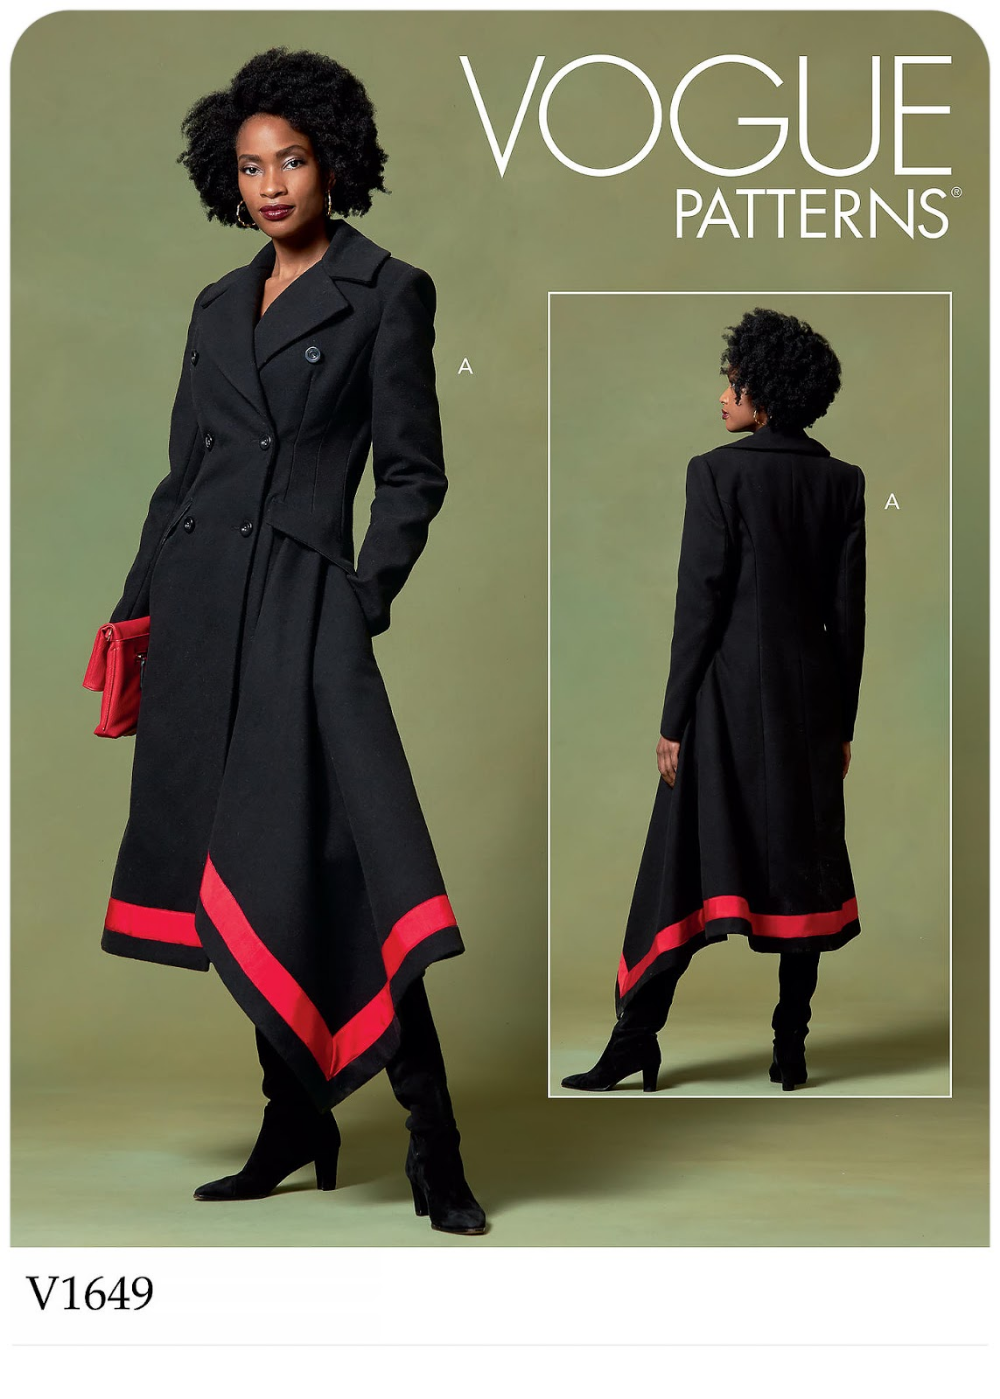 Vogue Patterns 1649 V1649 Vogue Patterns Diy Fashion No Sew